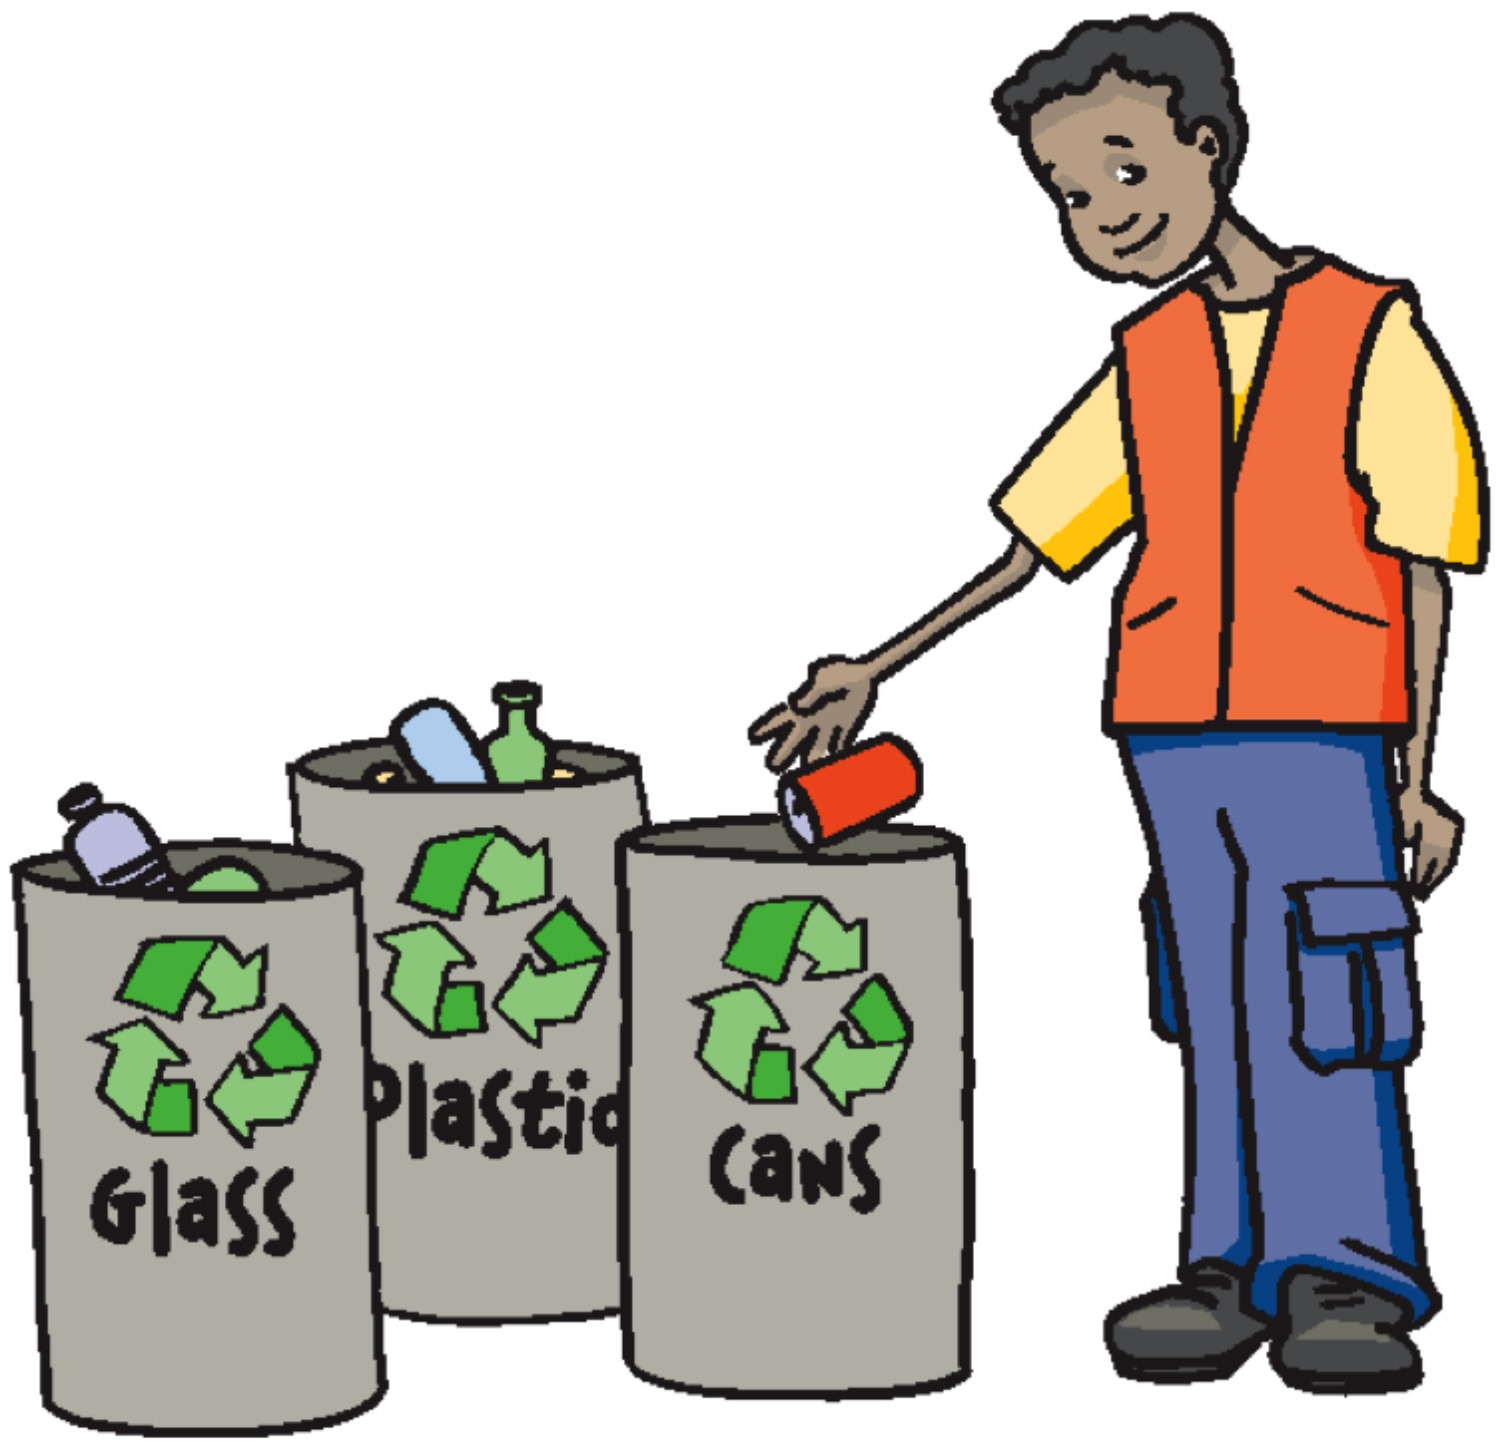 Waste dump clipart picture library download Recycling Images | Free download best Recycling Images on ... picture library download